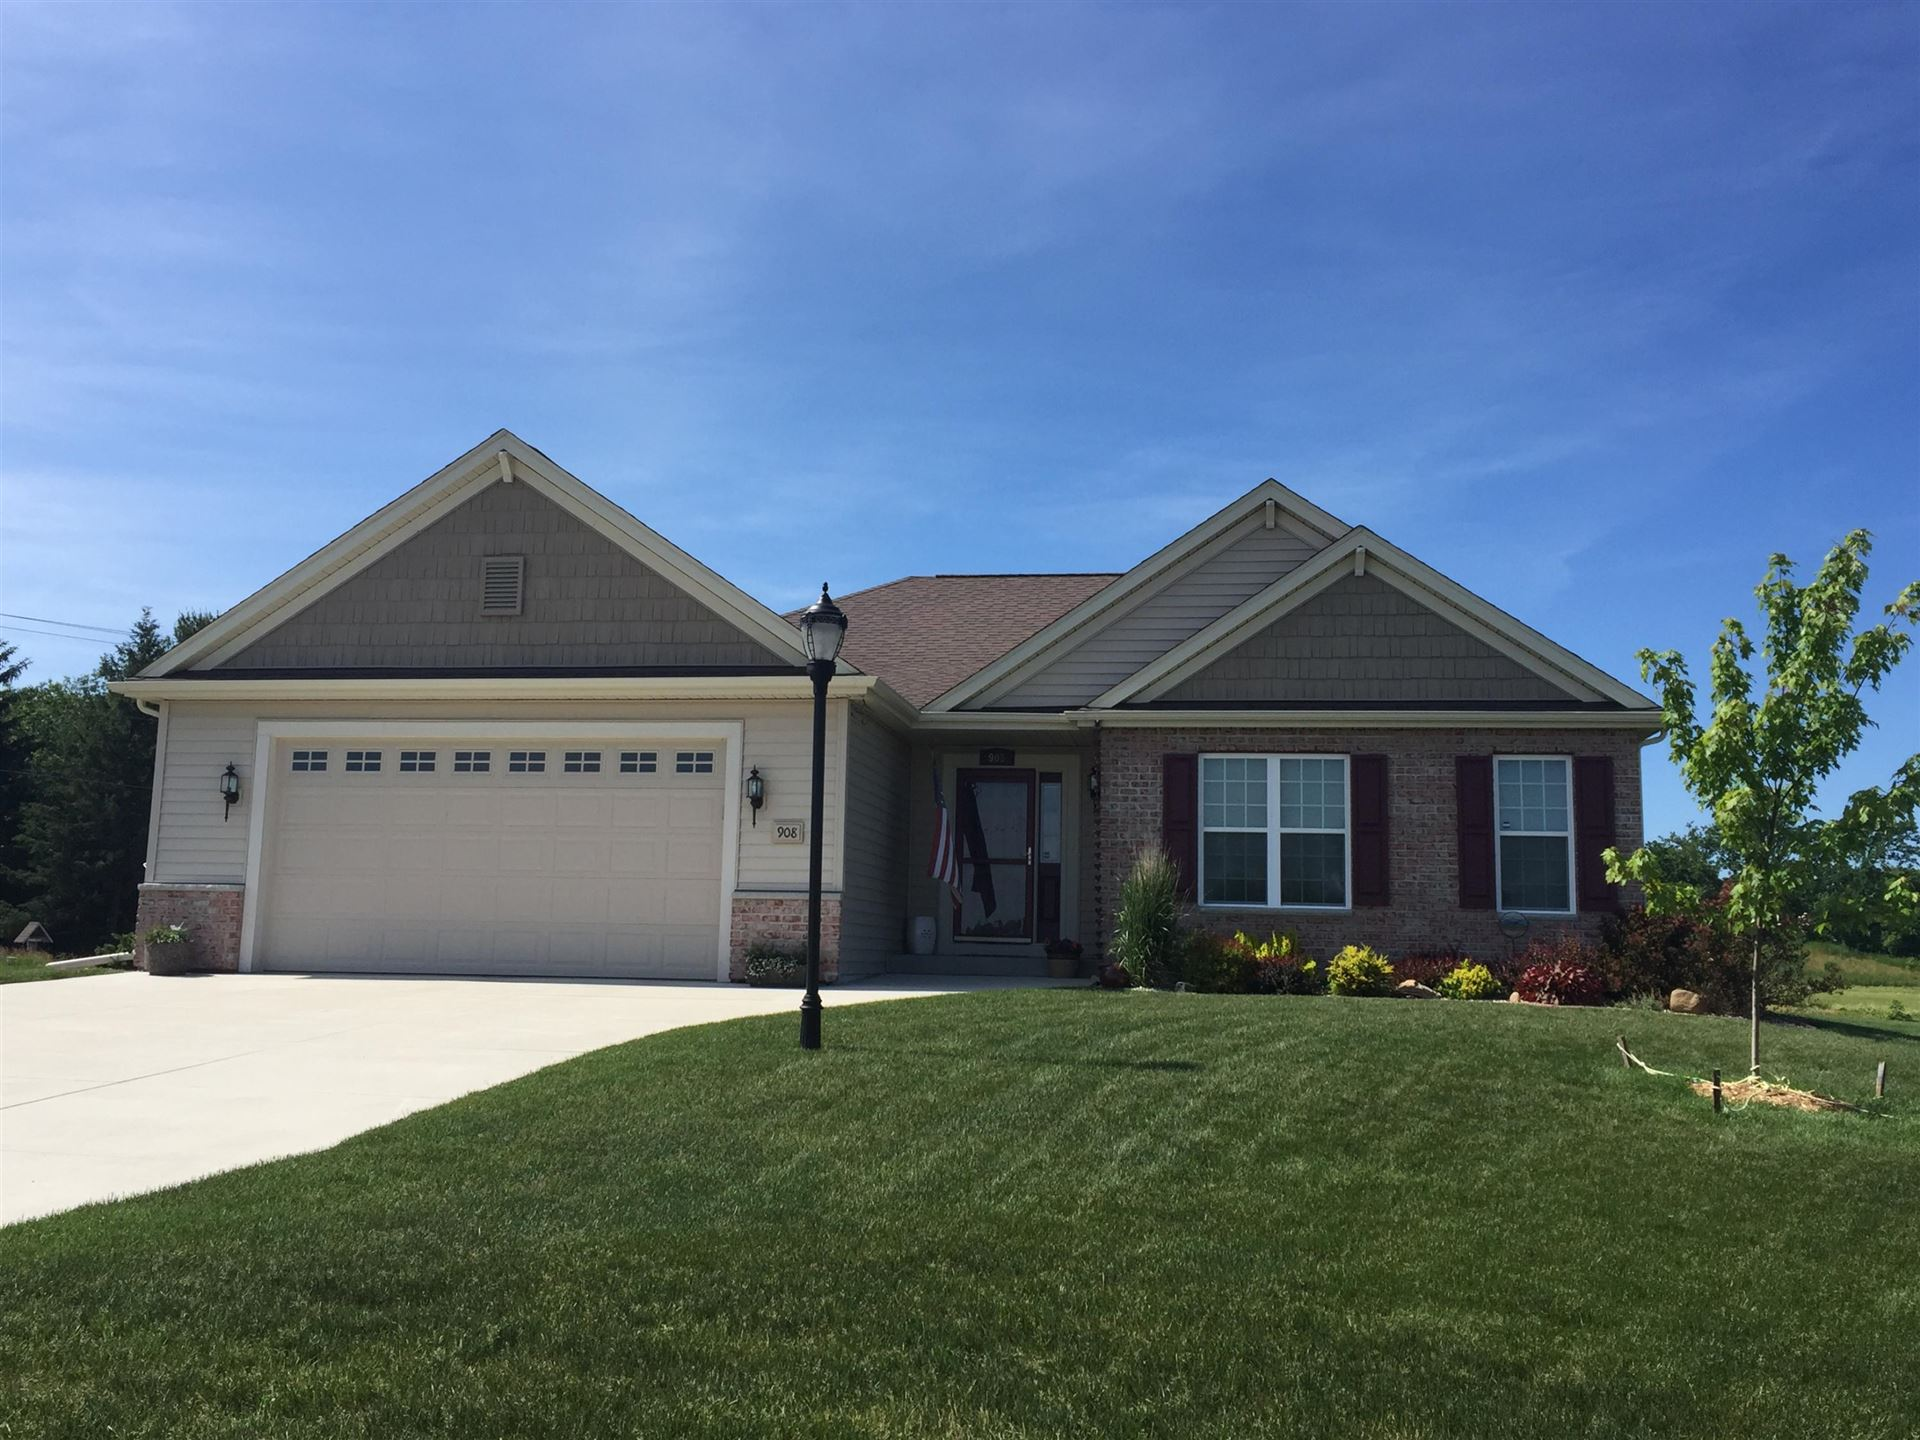 908 Stone Circle Ct, Waterford, WI 53185 - #: 1689260